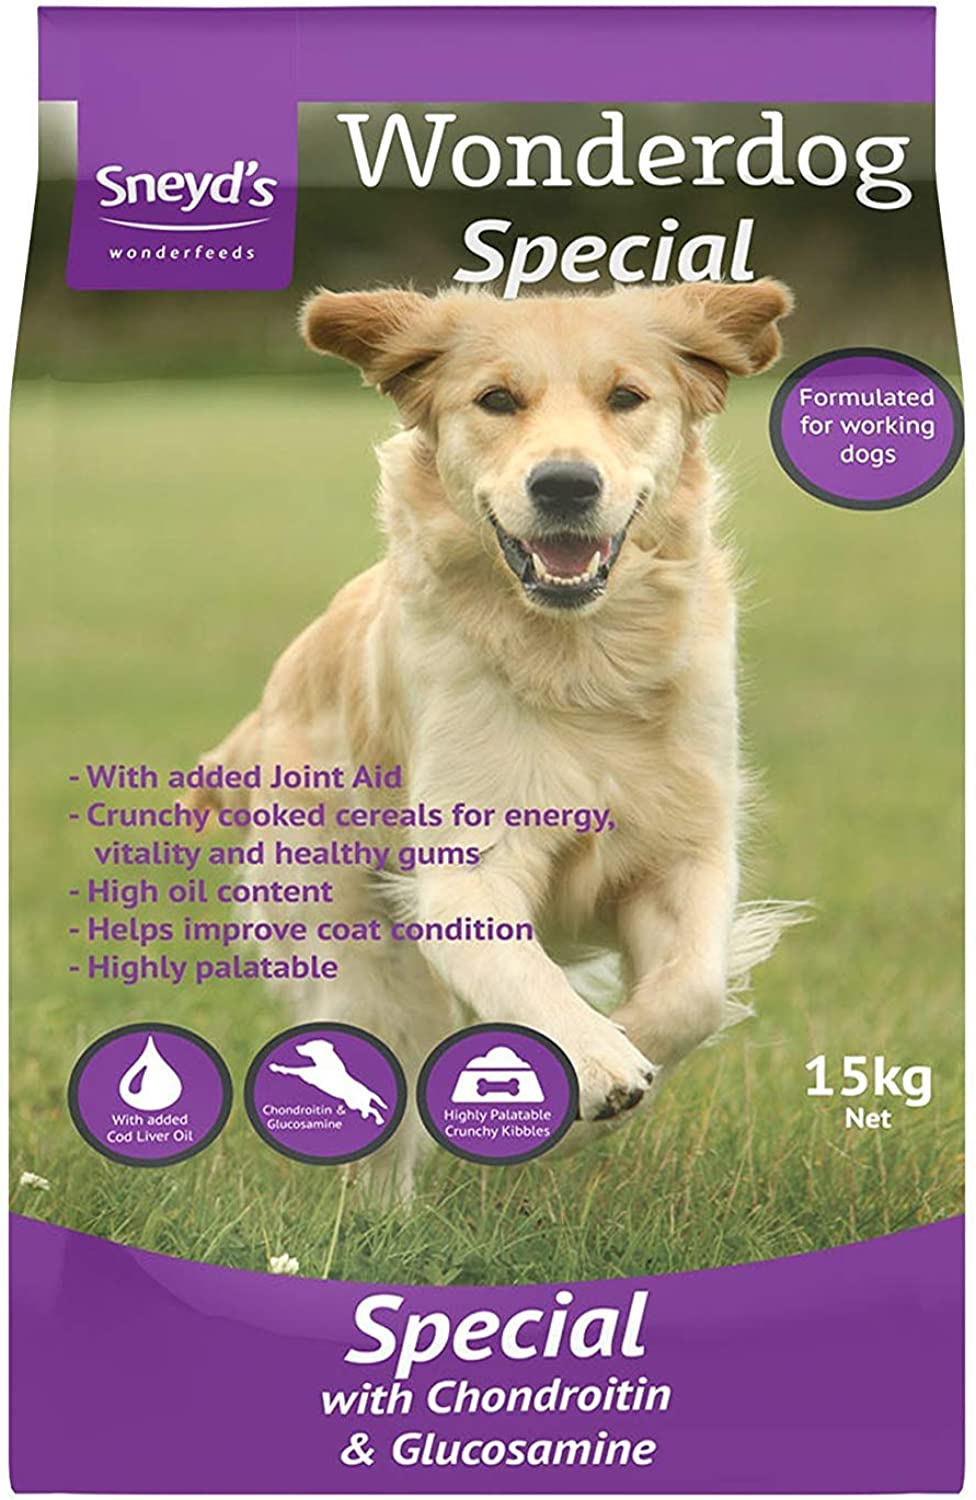 3XSpecial with Chondroitin & Glucosamine 15kg